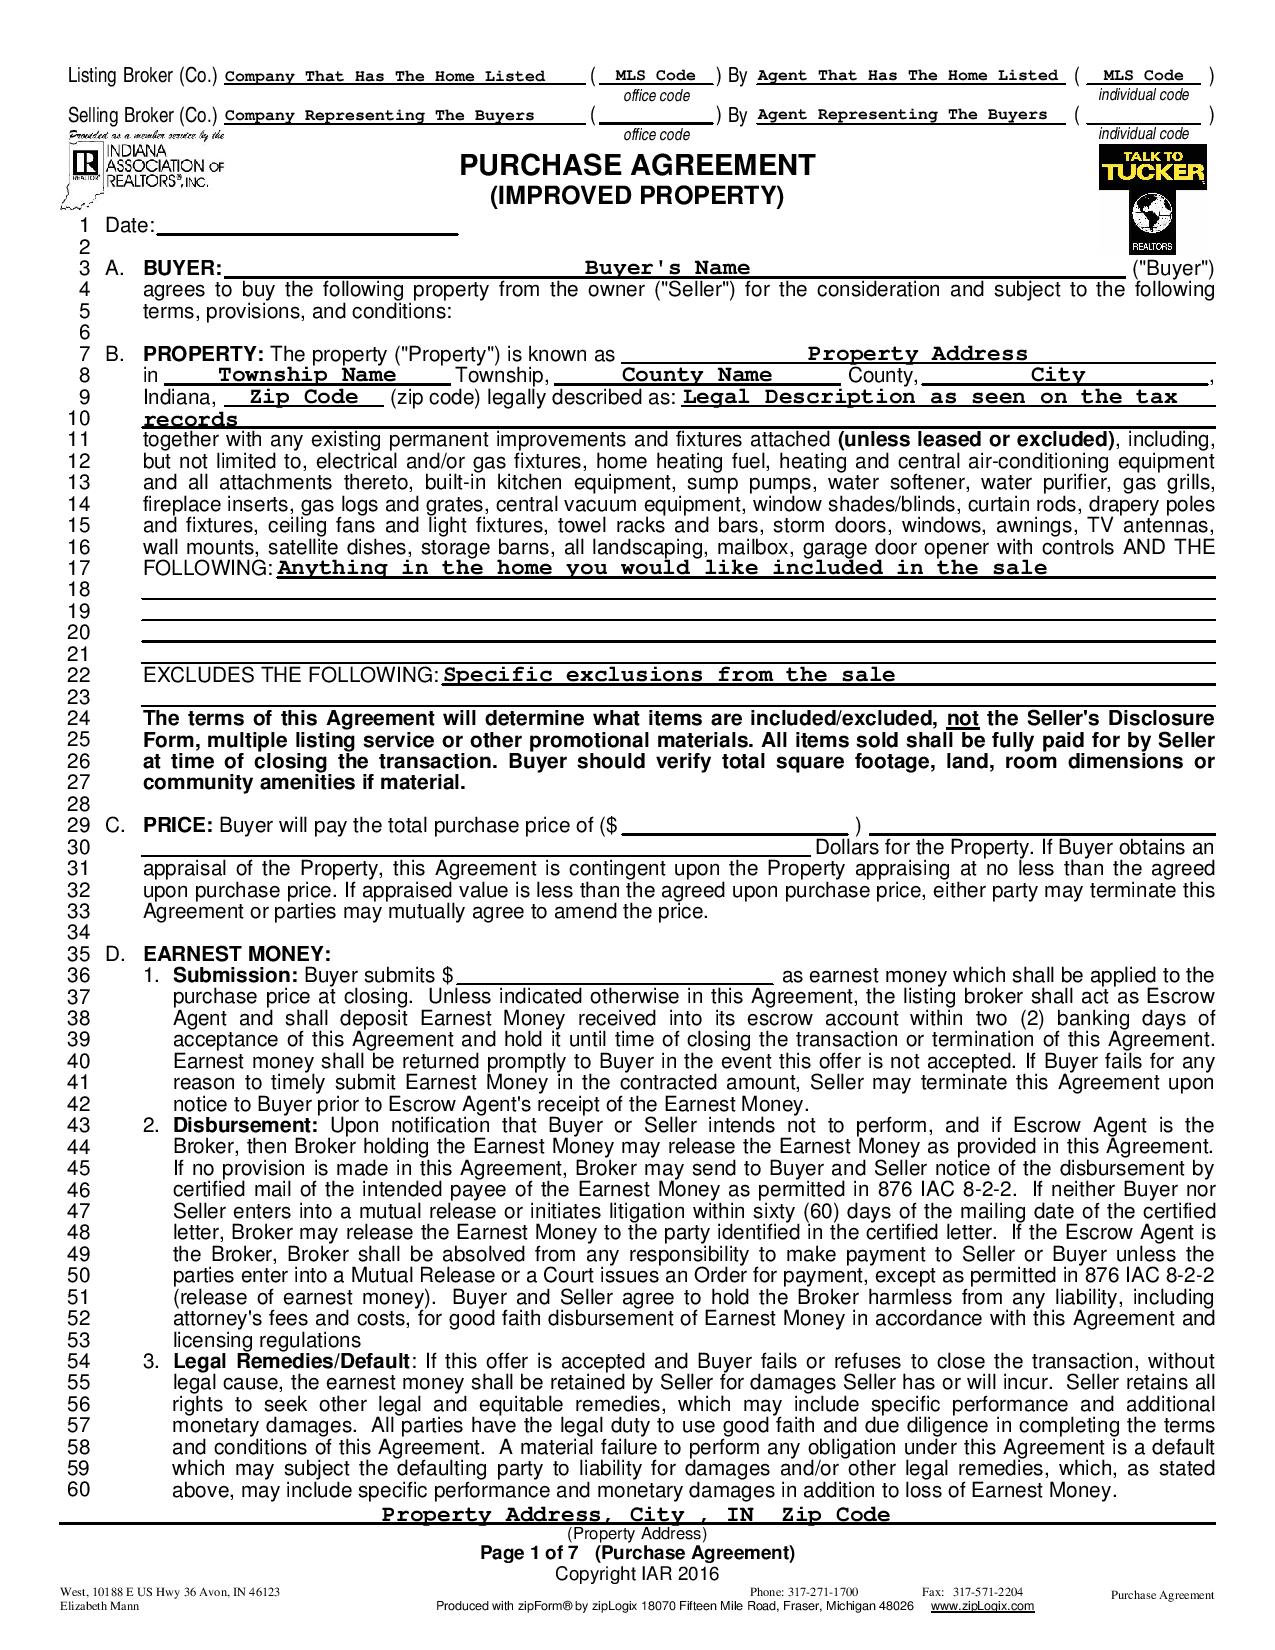 Real Estate Purchase Agreement Indiana Fill Online, Printable